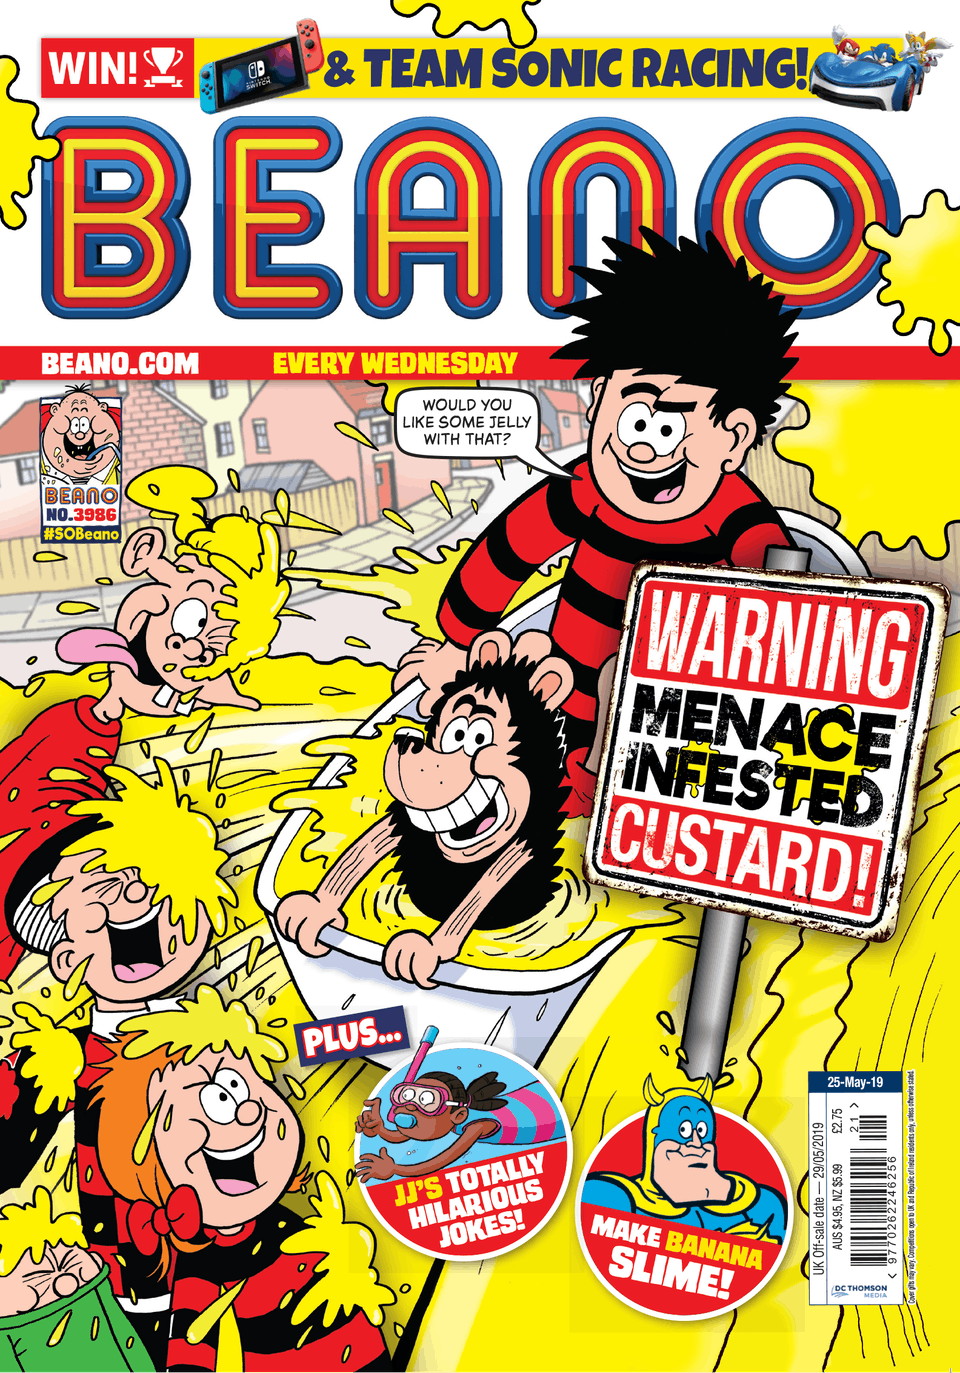 Inside Beano no. 3986: Menace Infested Custard!